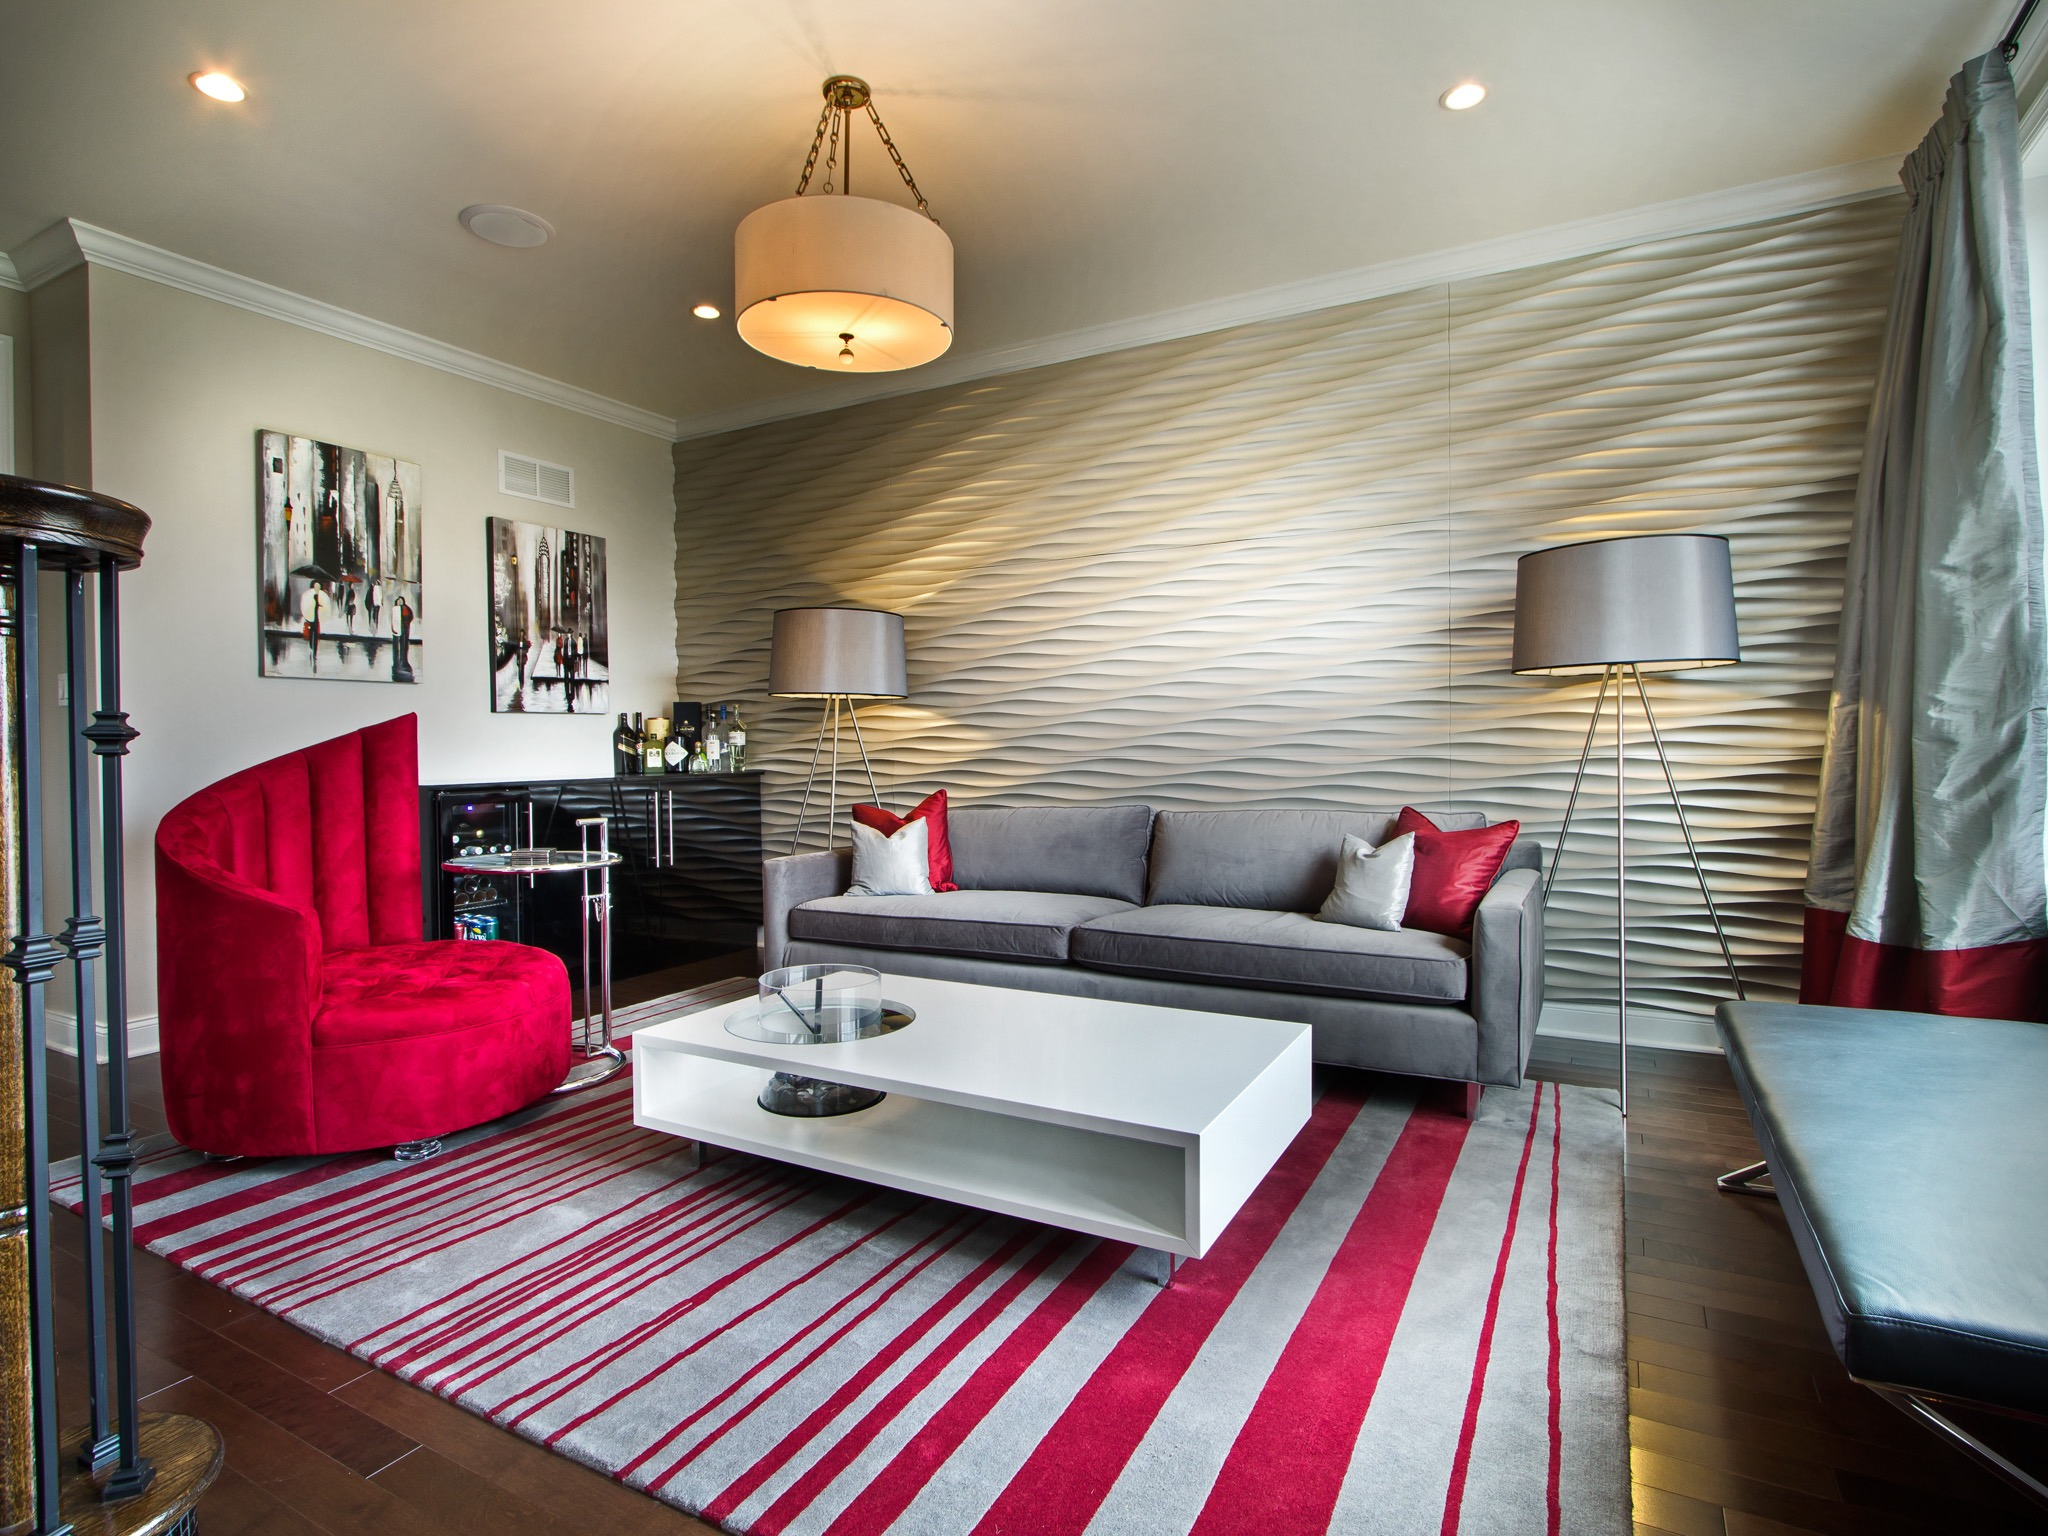 Bold Silver And Red Color Scheme For Textured Modern Living Room Wall Decor (Image 3 of 20)